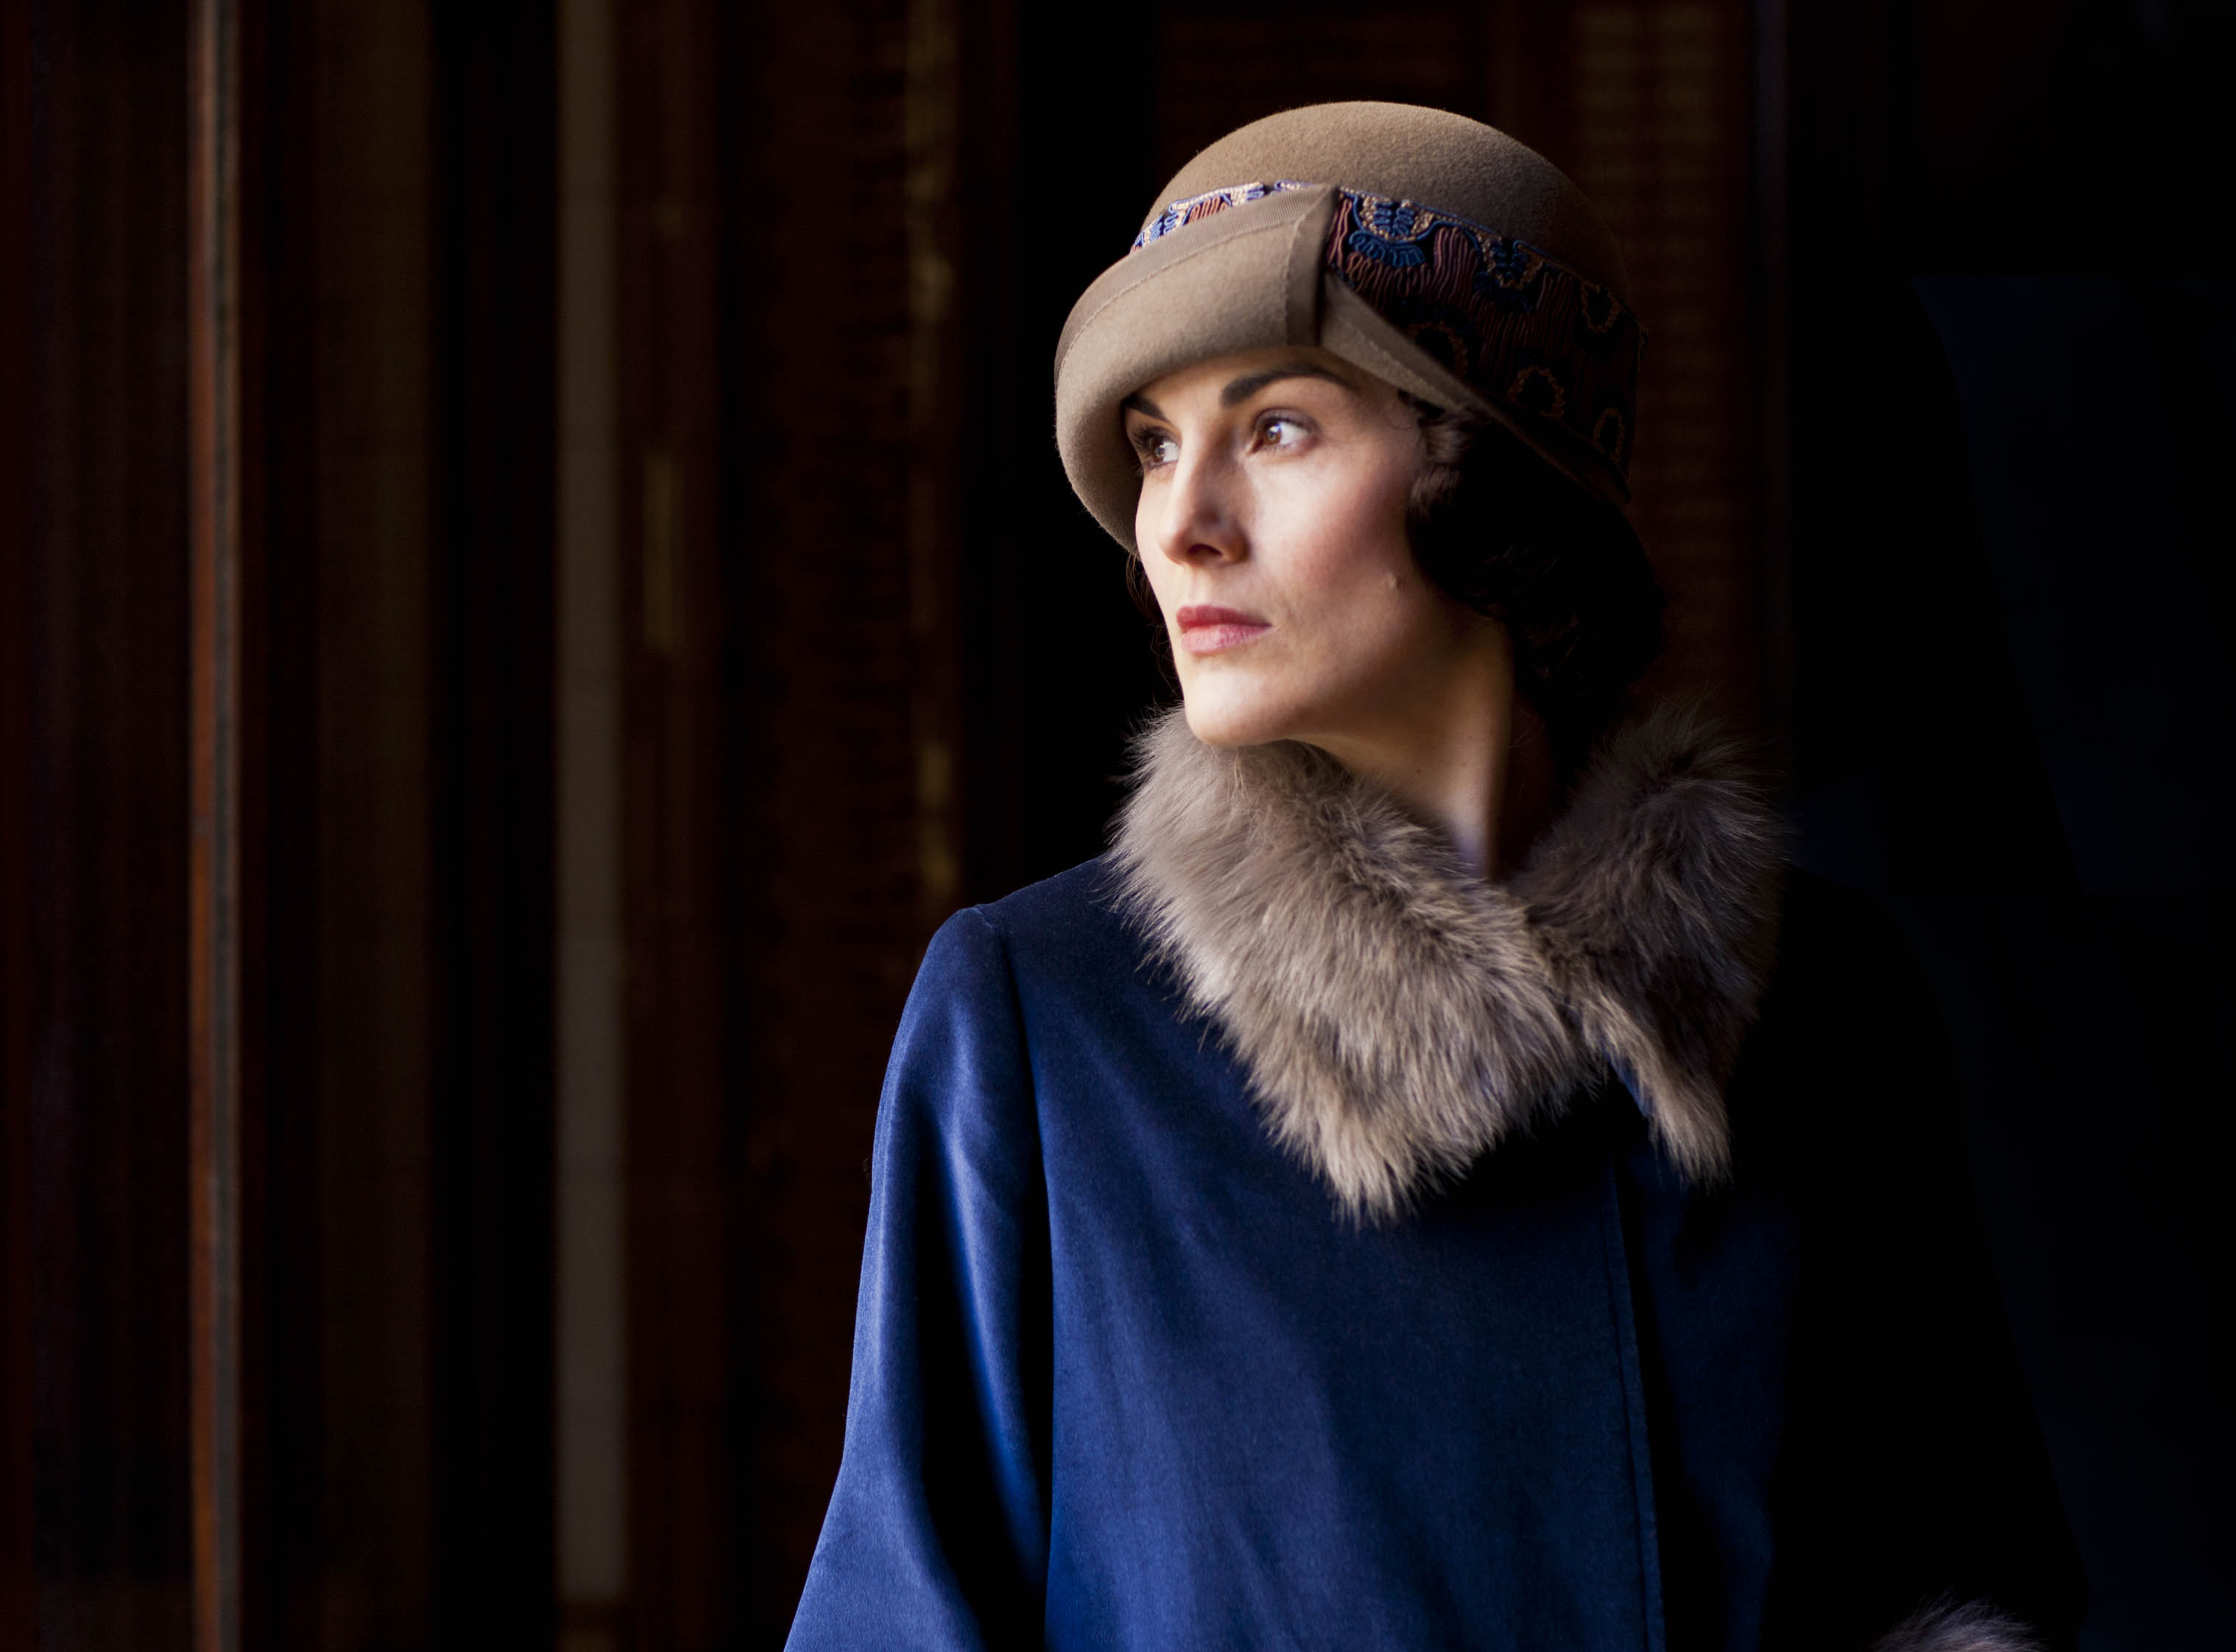 Downton Abbey Season 5: Spoiler free preview of episode 3 and has Mary got away with it?